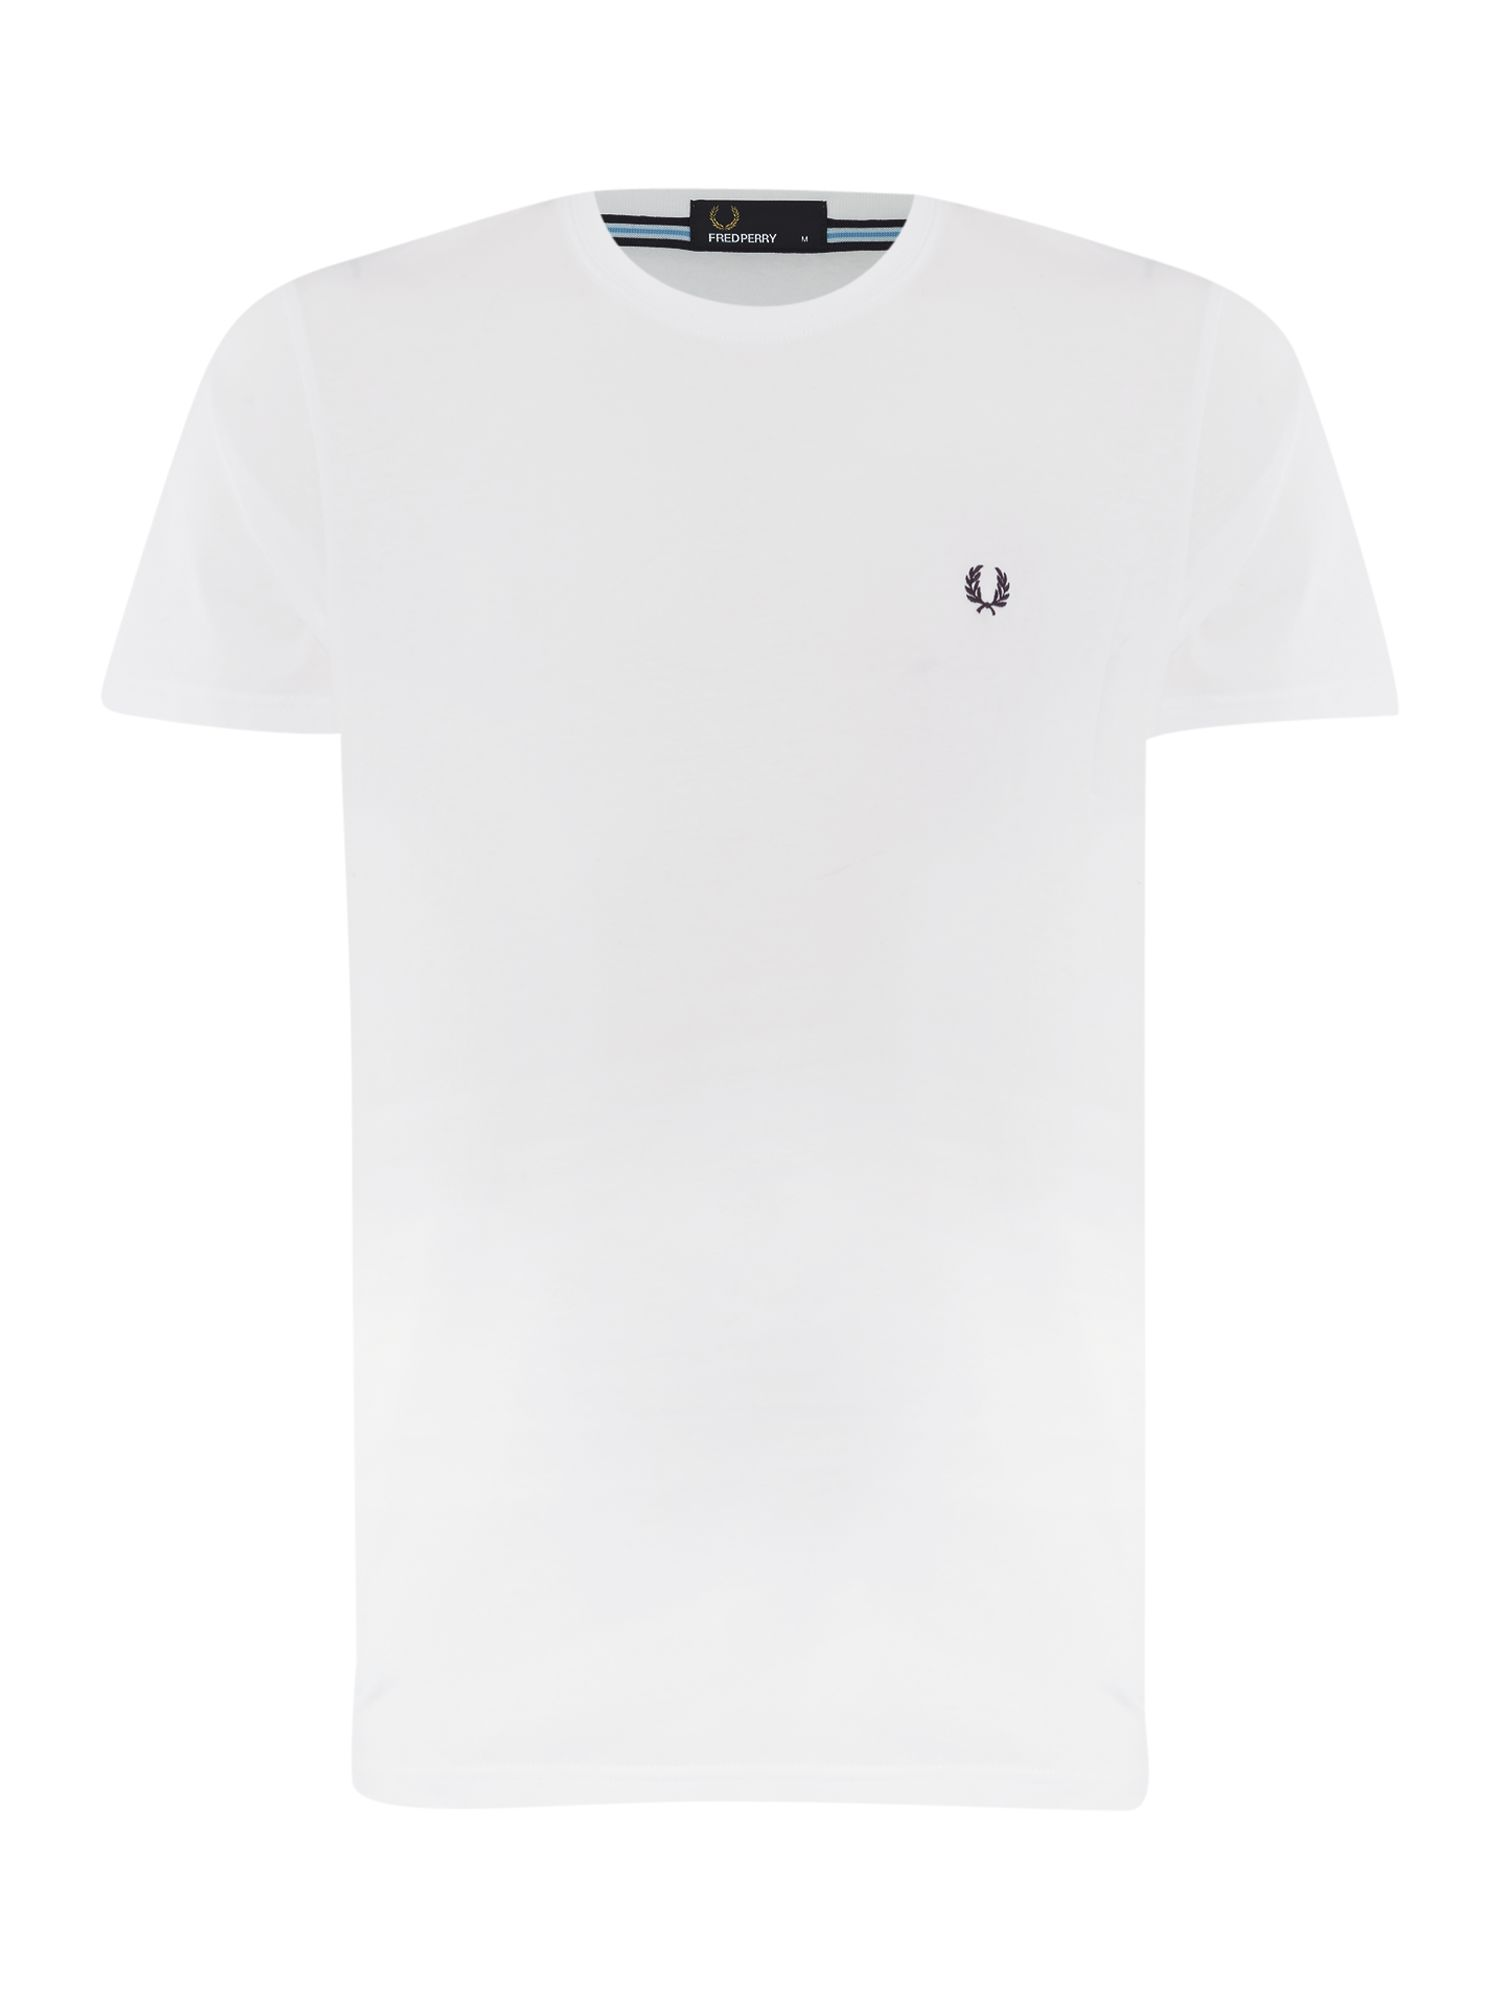 Men's Fred Perry Short-Sleeved T-Shirt, White